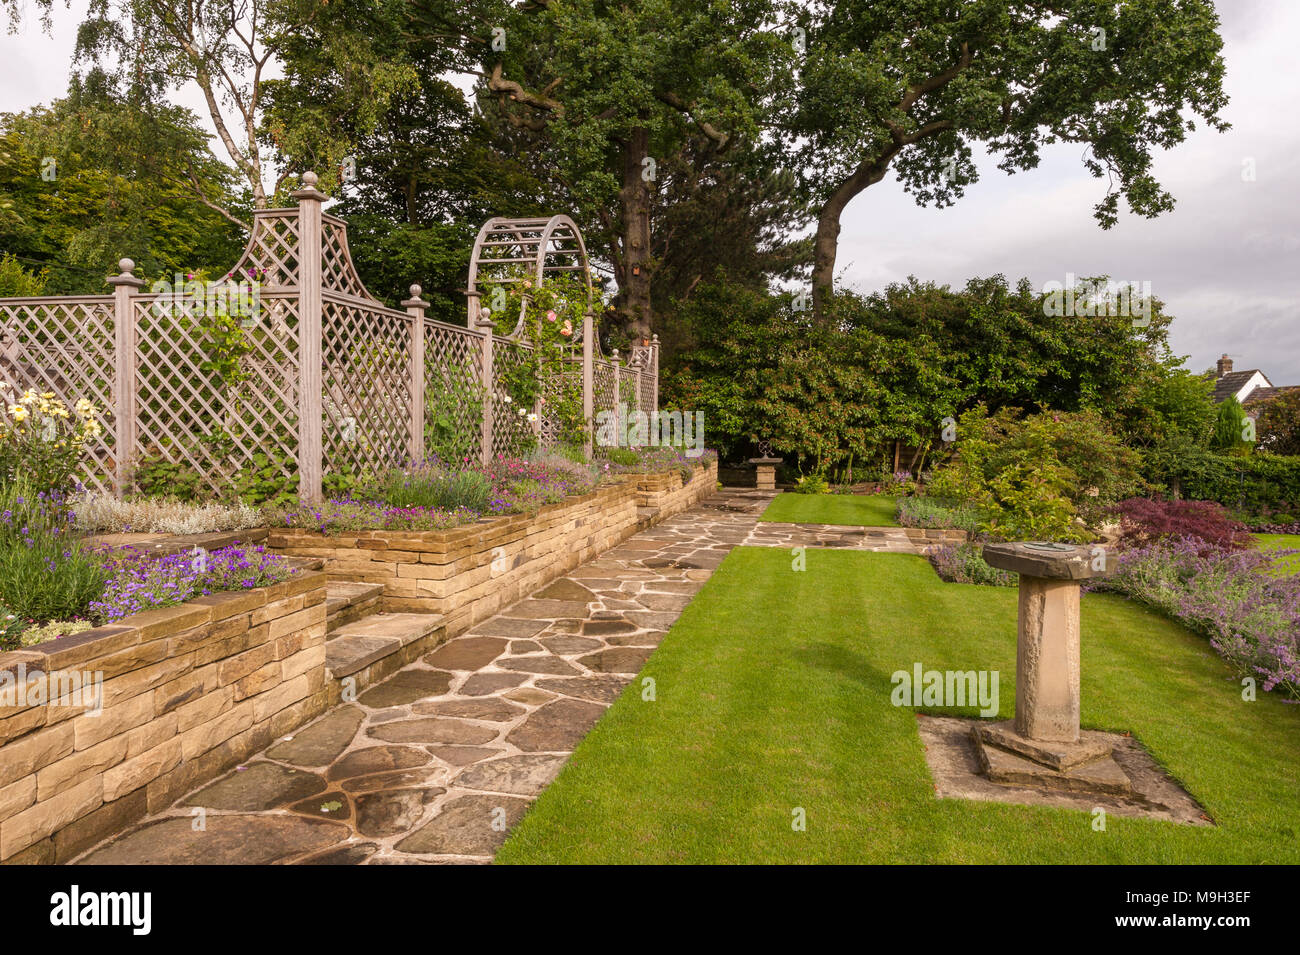 Path, flowering plants on border, lawn, stone wall, wooden trellis arch & screen - beautiful, designed, landscaped, garden - West Yorkshire, England. Stock Photo